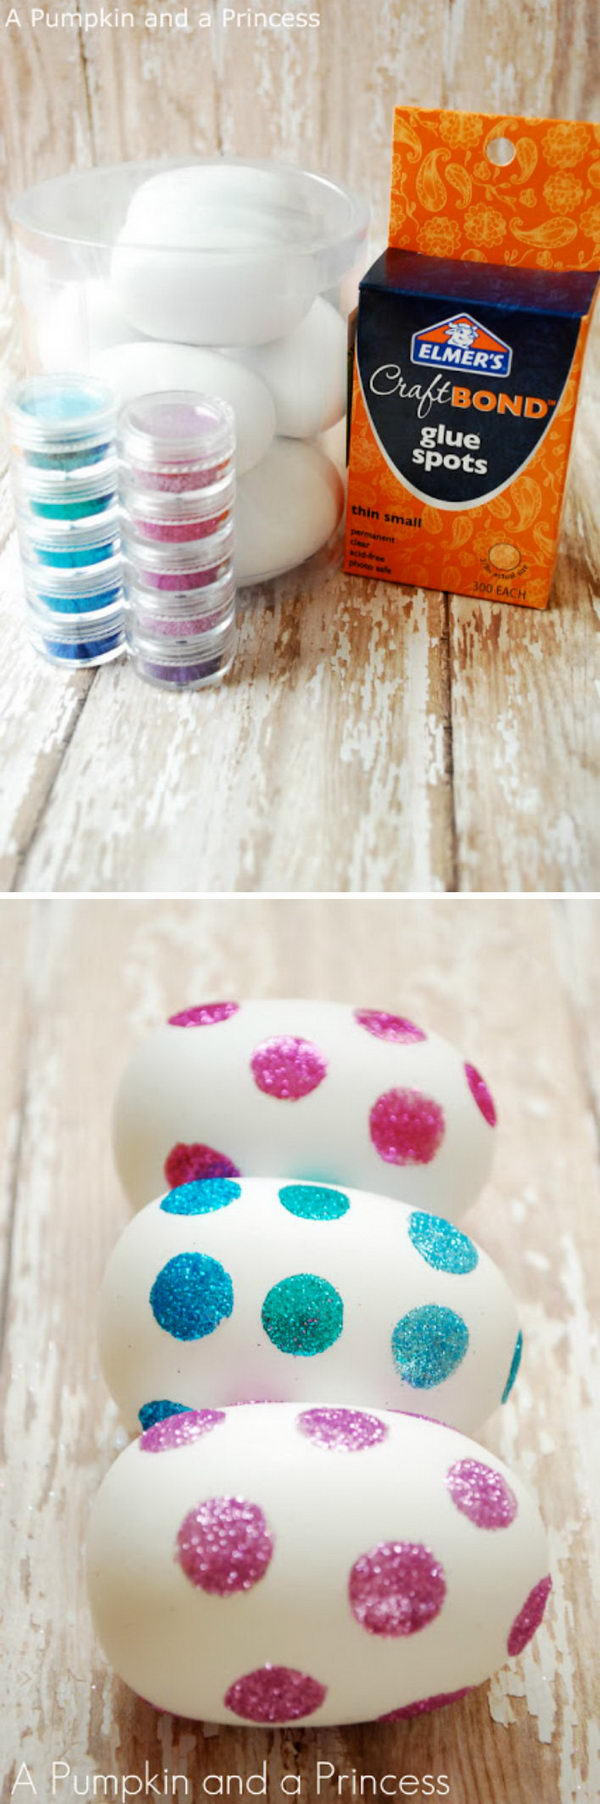 Make Glittery Easter Eggs.